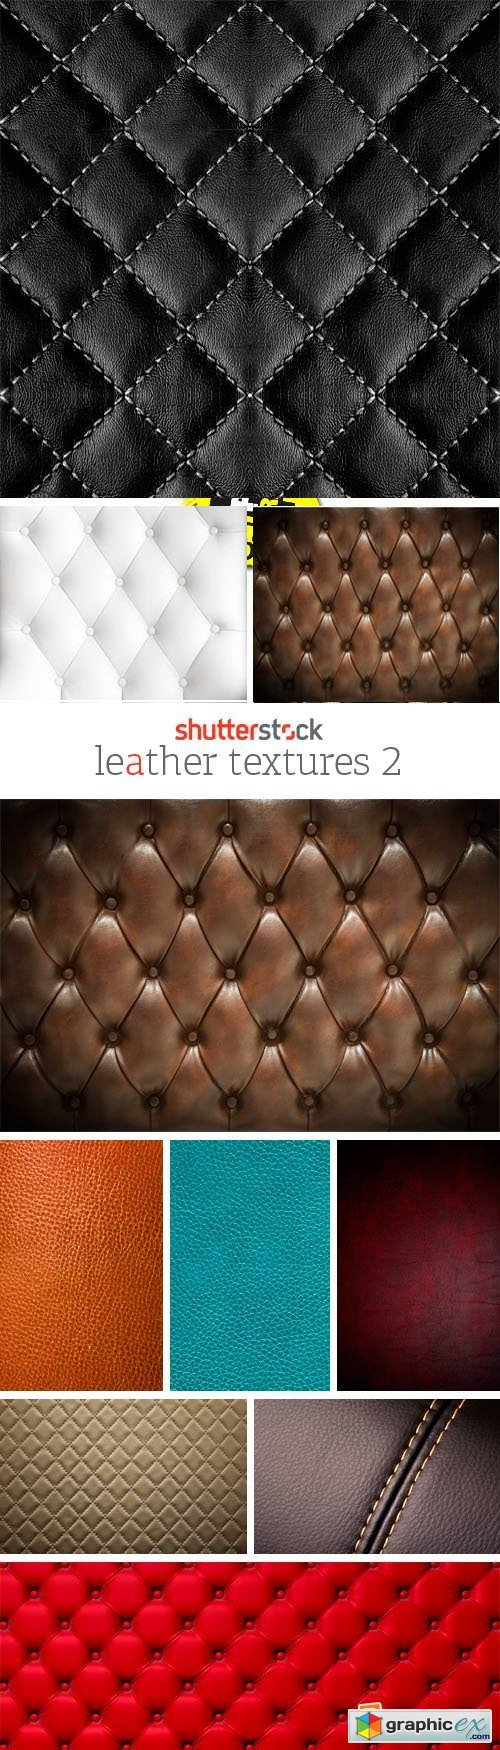 Amazing SS - Leather Textures 2, 25xJPGs